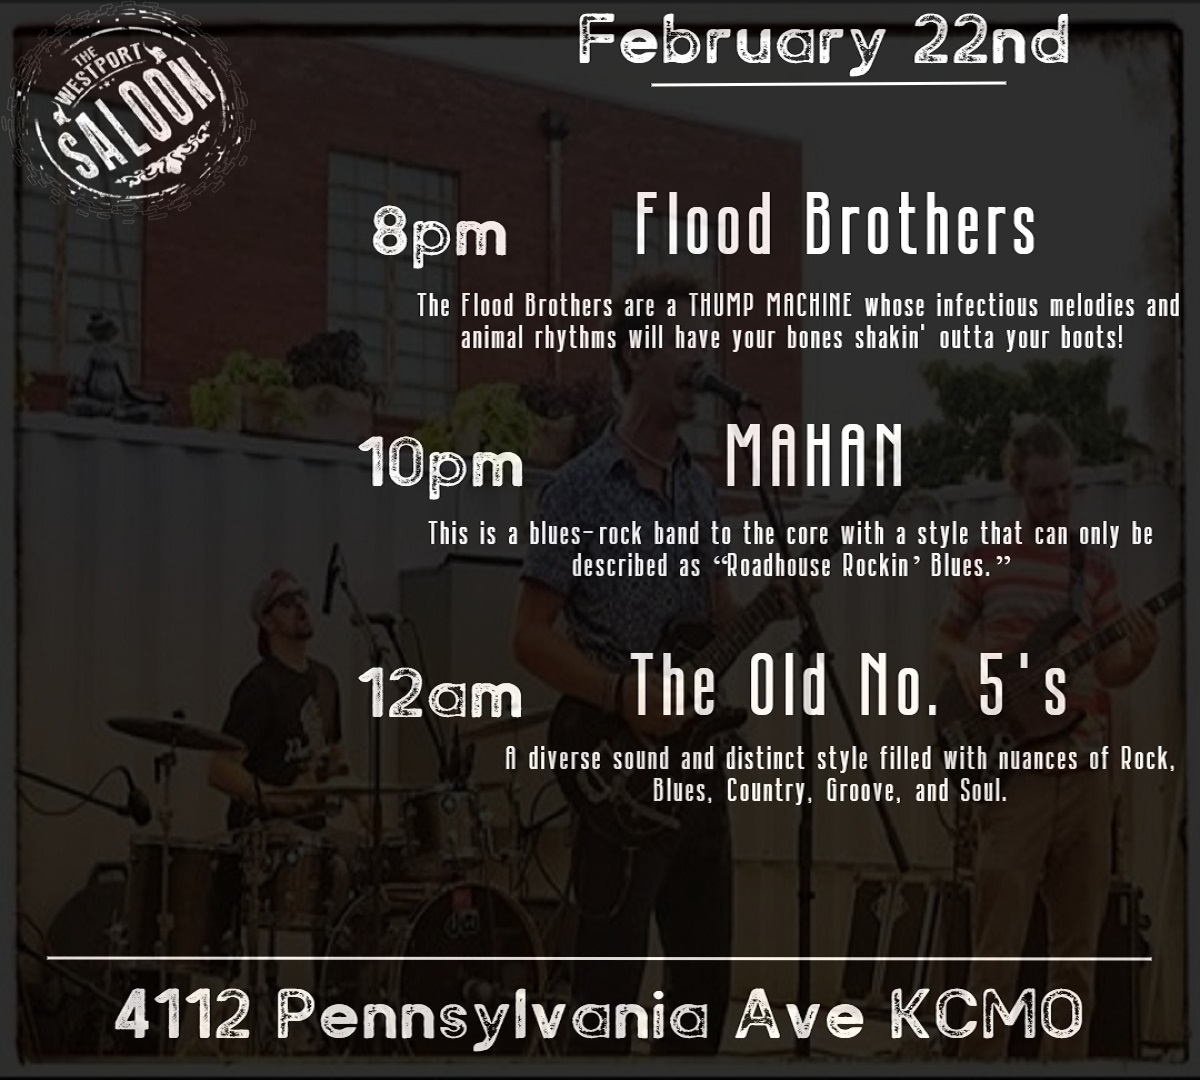 flood-brothers-mahan-old-no-5s